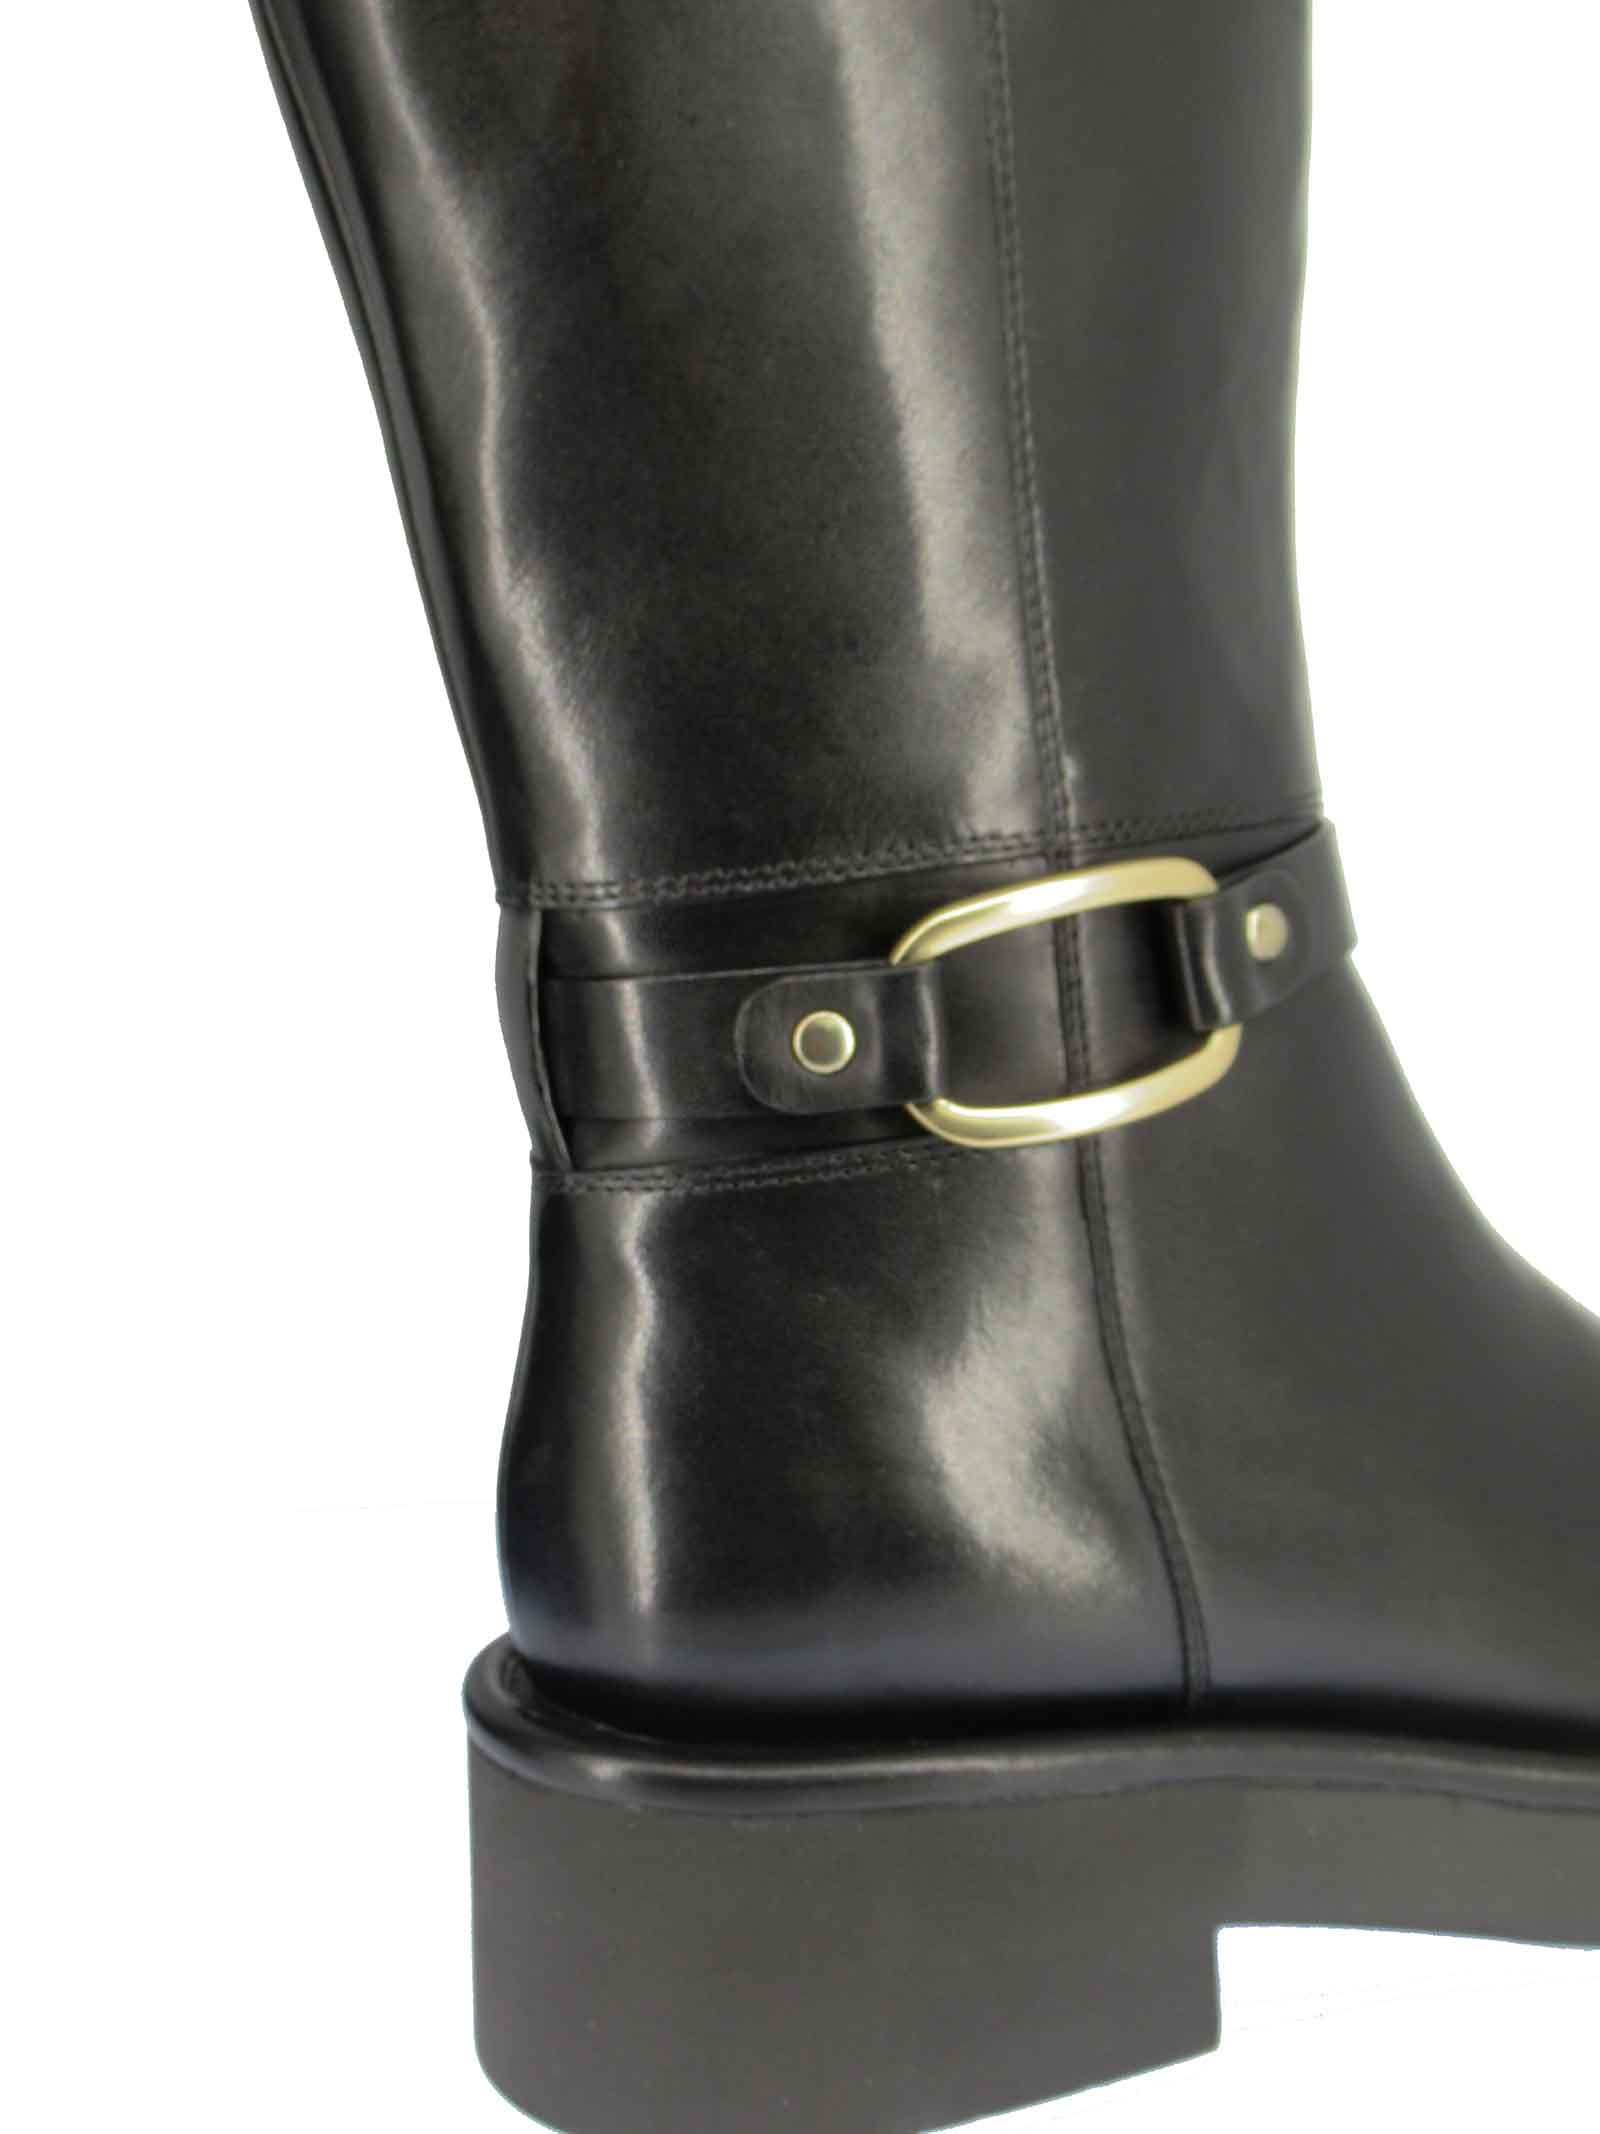 Women's Shoes Boots in Black Leather with Gold Side Buckle and Rubber Sole Bruno Premi   Ankle Boots   BC4002X001